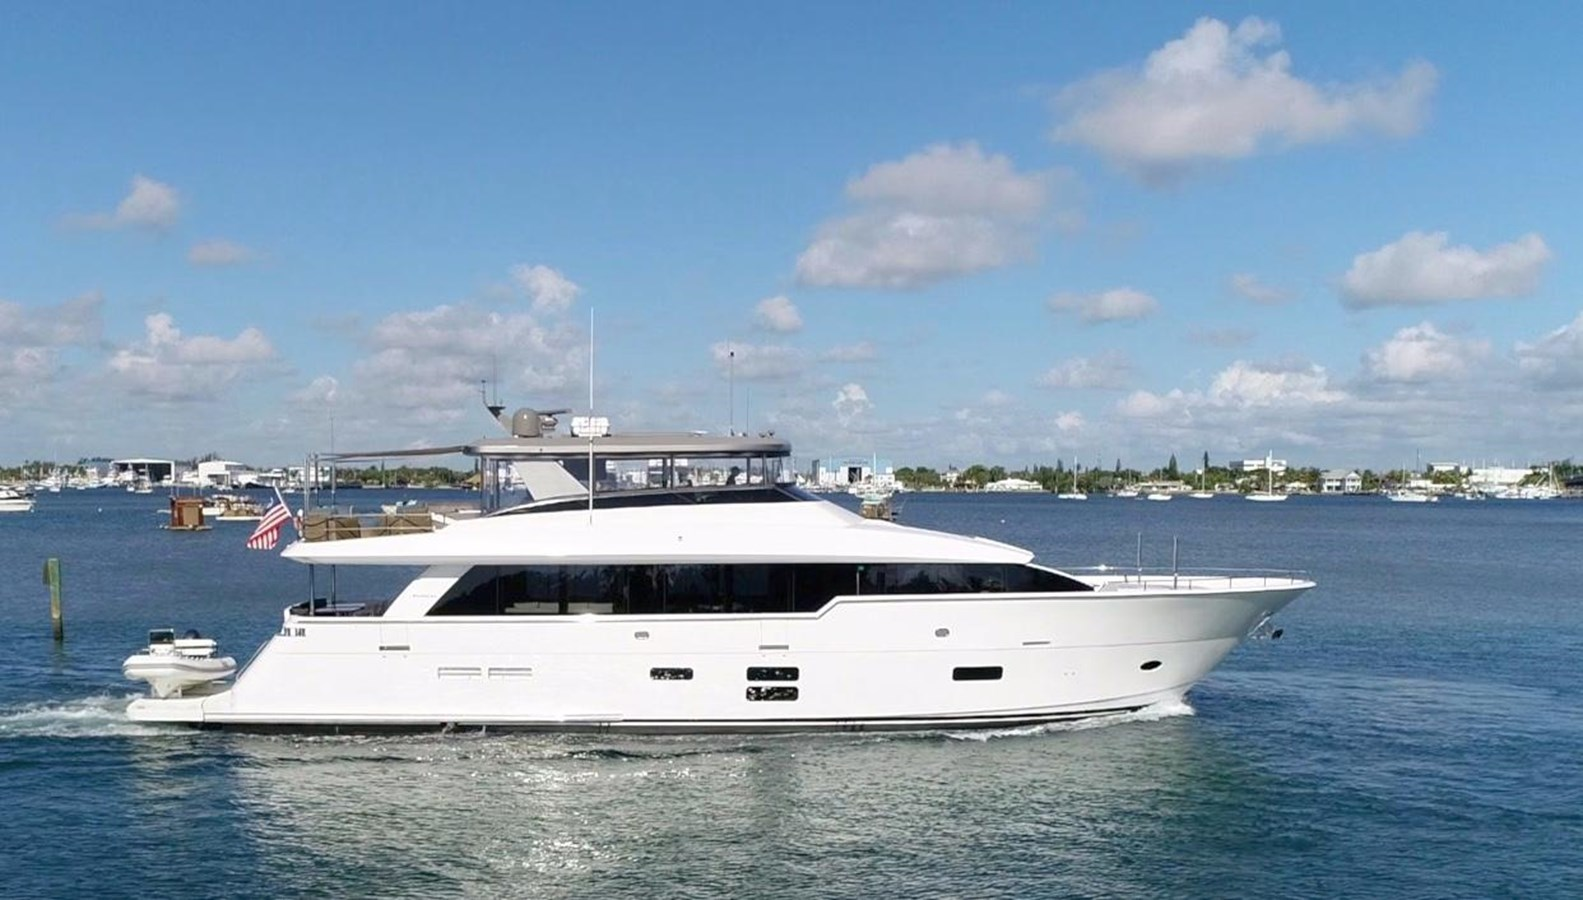 SNOWGHOST yacht for sale